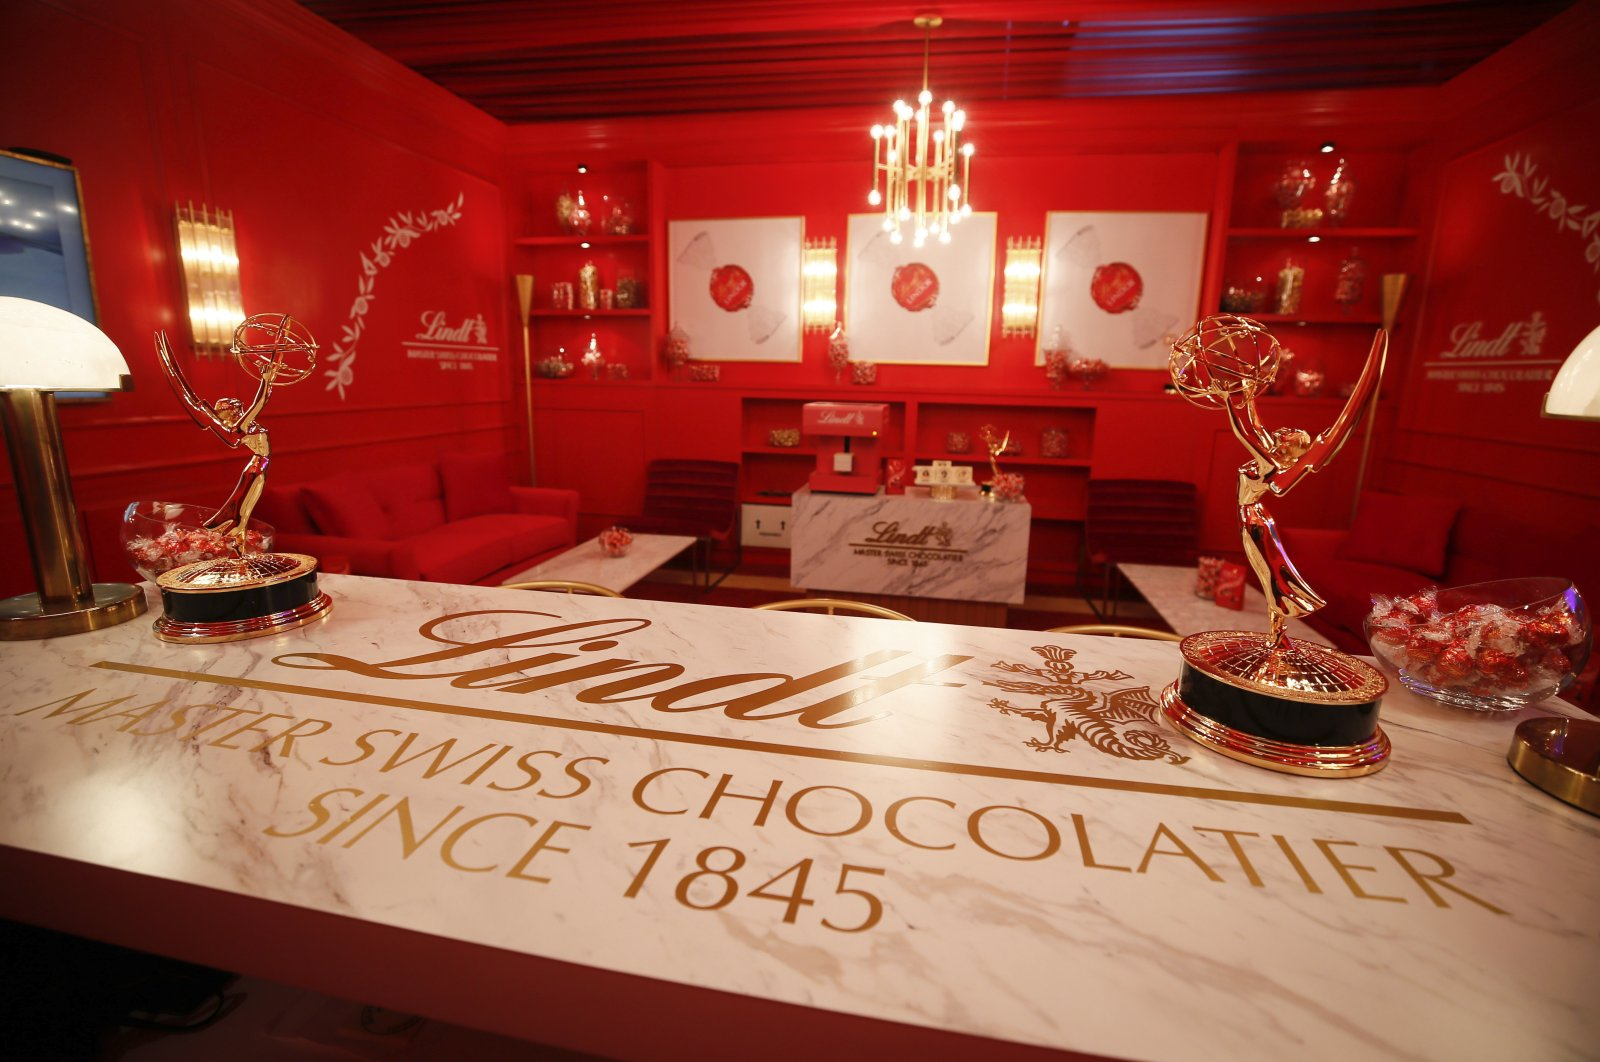 The decadent Lindt Chocolate Lounge where celebrities will relax backstage at the Emmy Awards is revealed ahead of the Sunday, Sept. 22 telecast during FOX's 2019 Pre-Emmy Press Event at Microsoft Theater on Thursday, Sept. 19, 2019, in Los Angeles, CA. (AP File Photo)